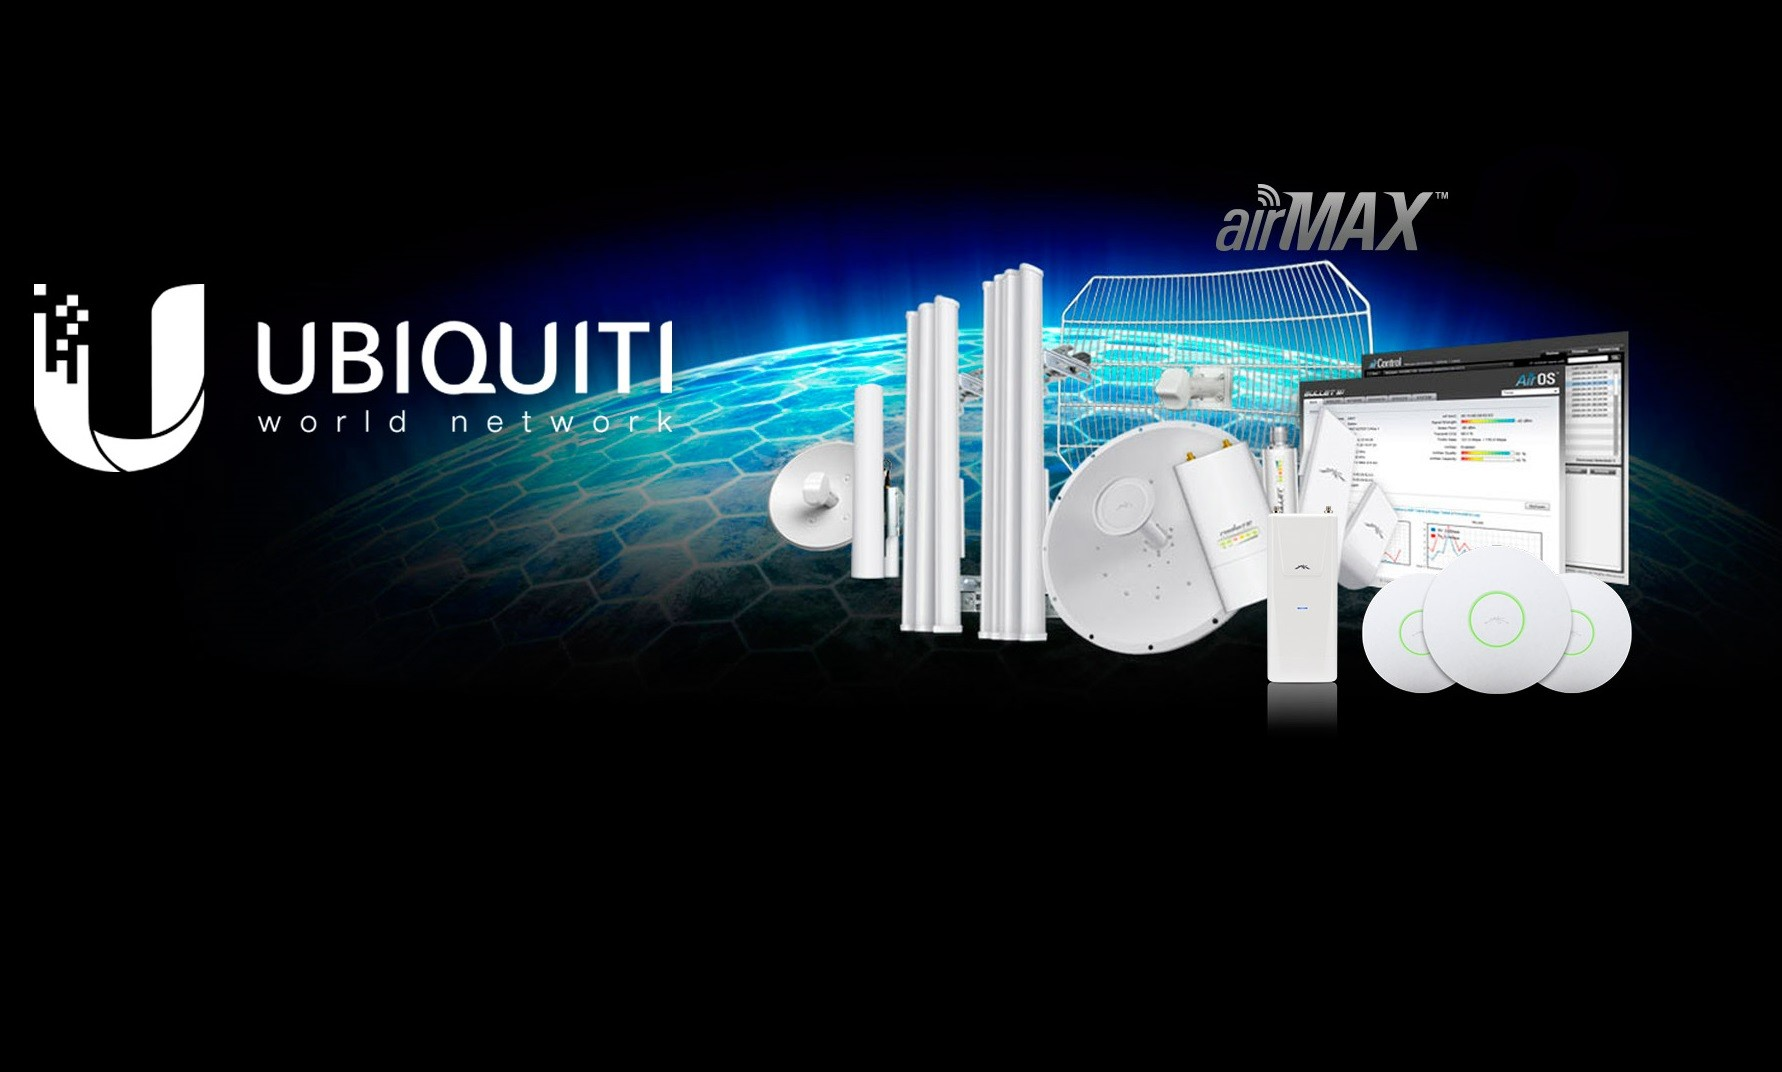 Ubiquiti Makes Available Firmware 6 0 30097 161219 for Its airMAX M